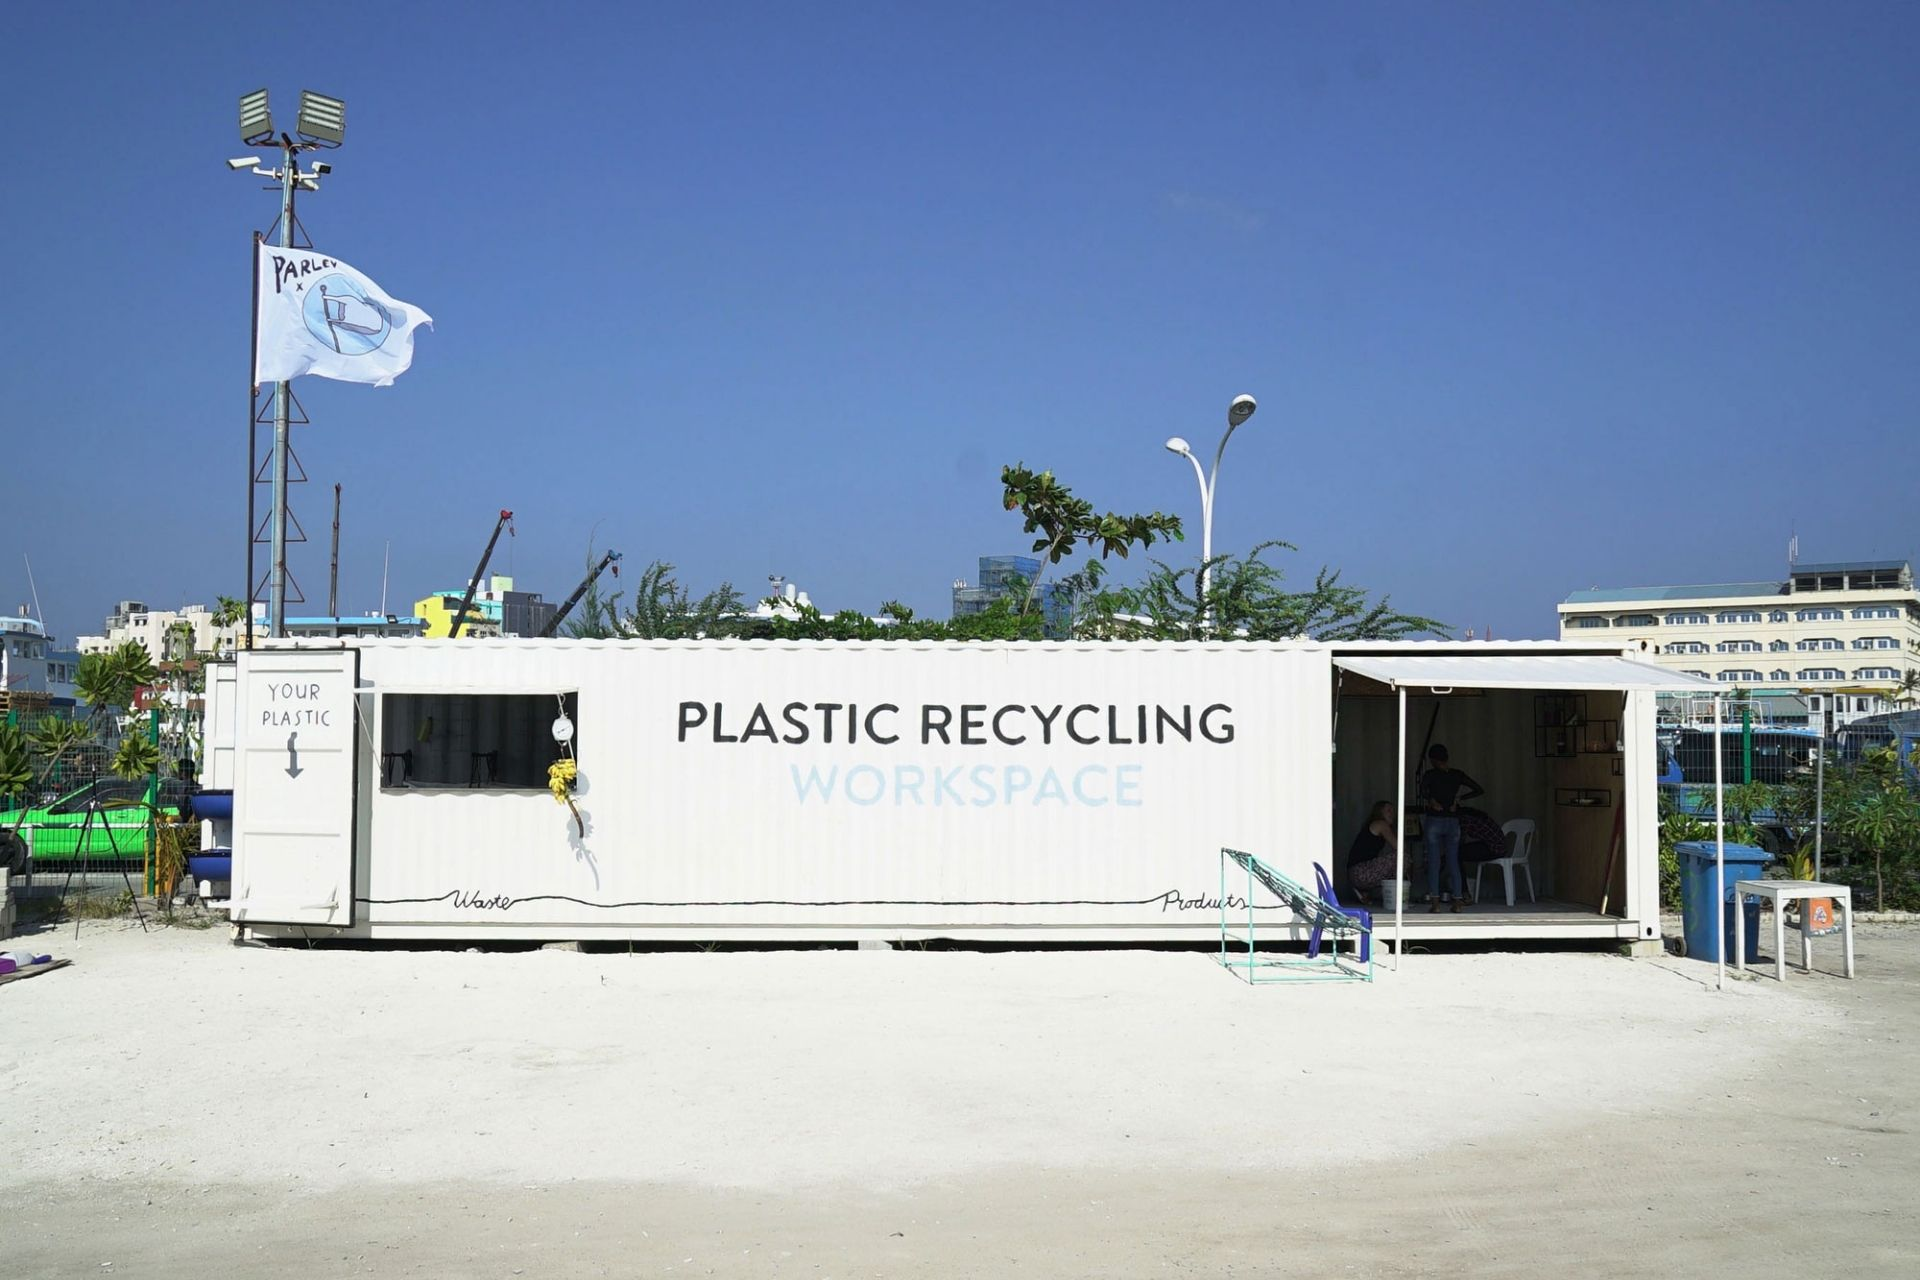 Precious Plastic recycling workspace container in Maldives